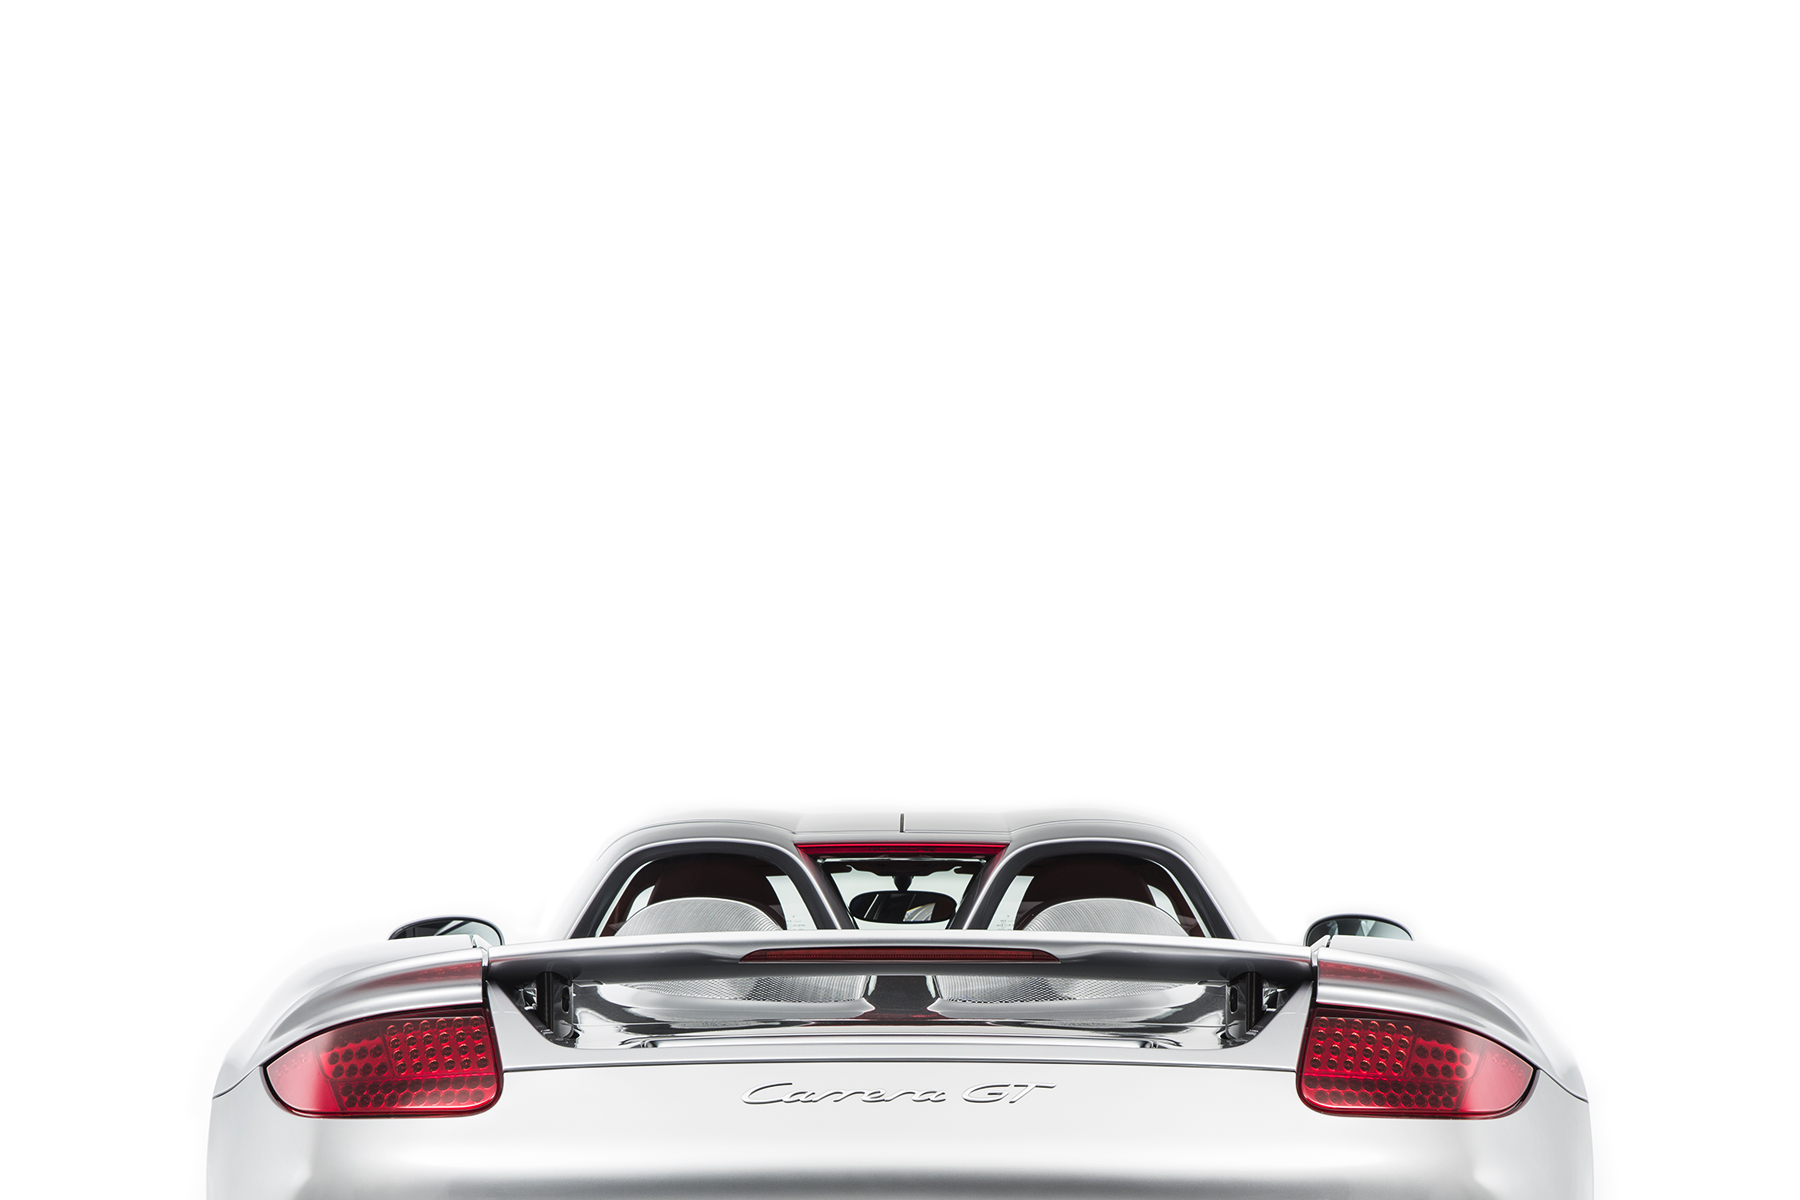 CarreraGT_cut_rear